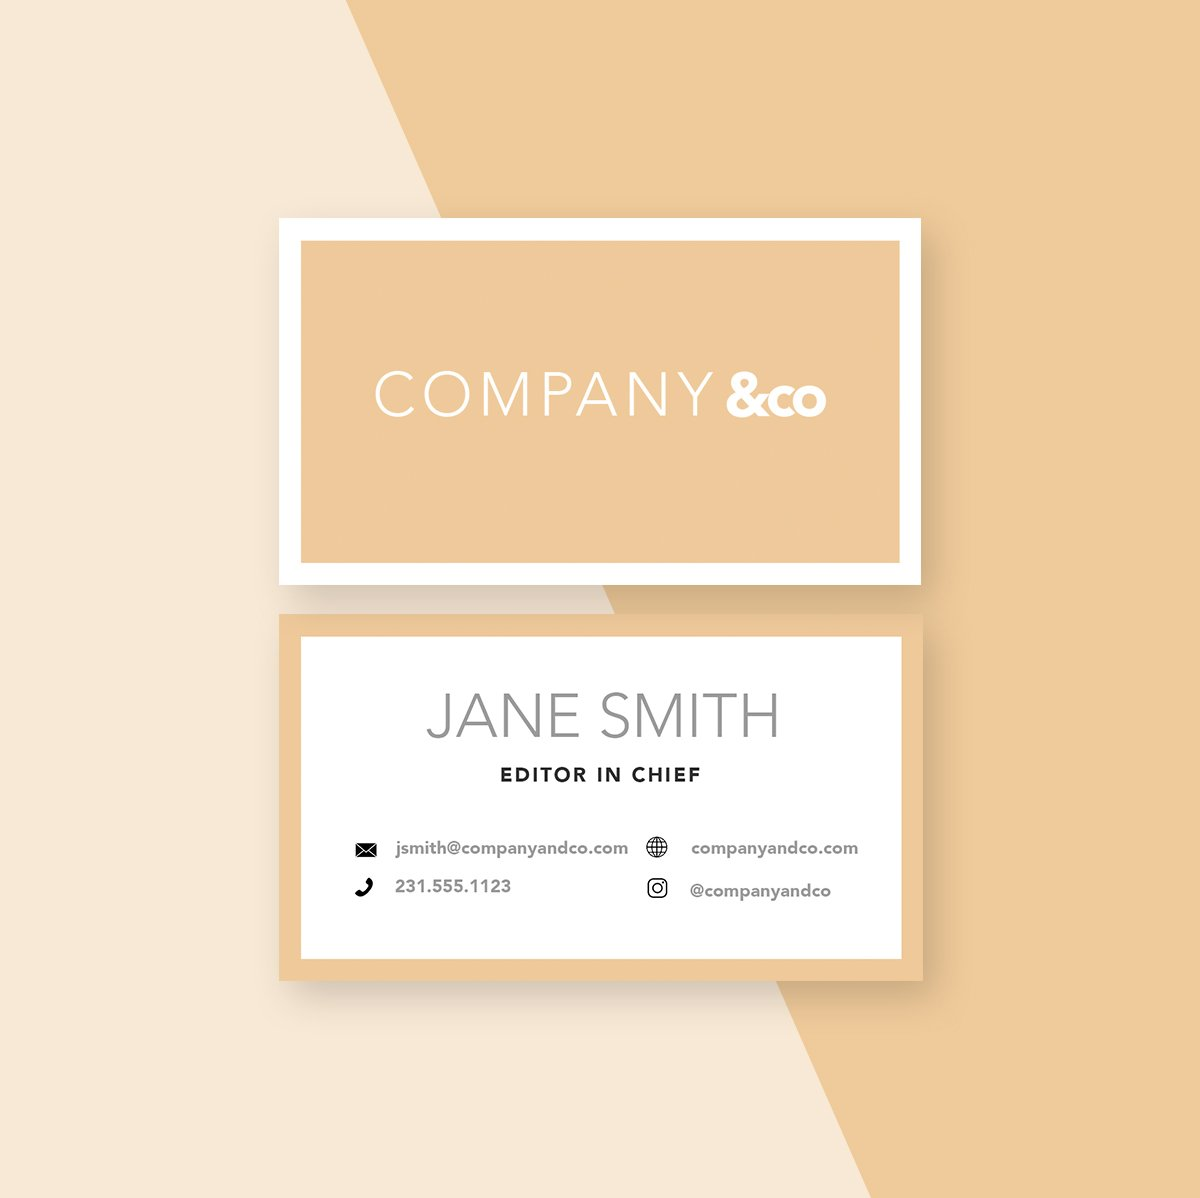 Company & Co Business Card Template